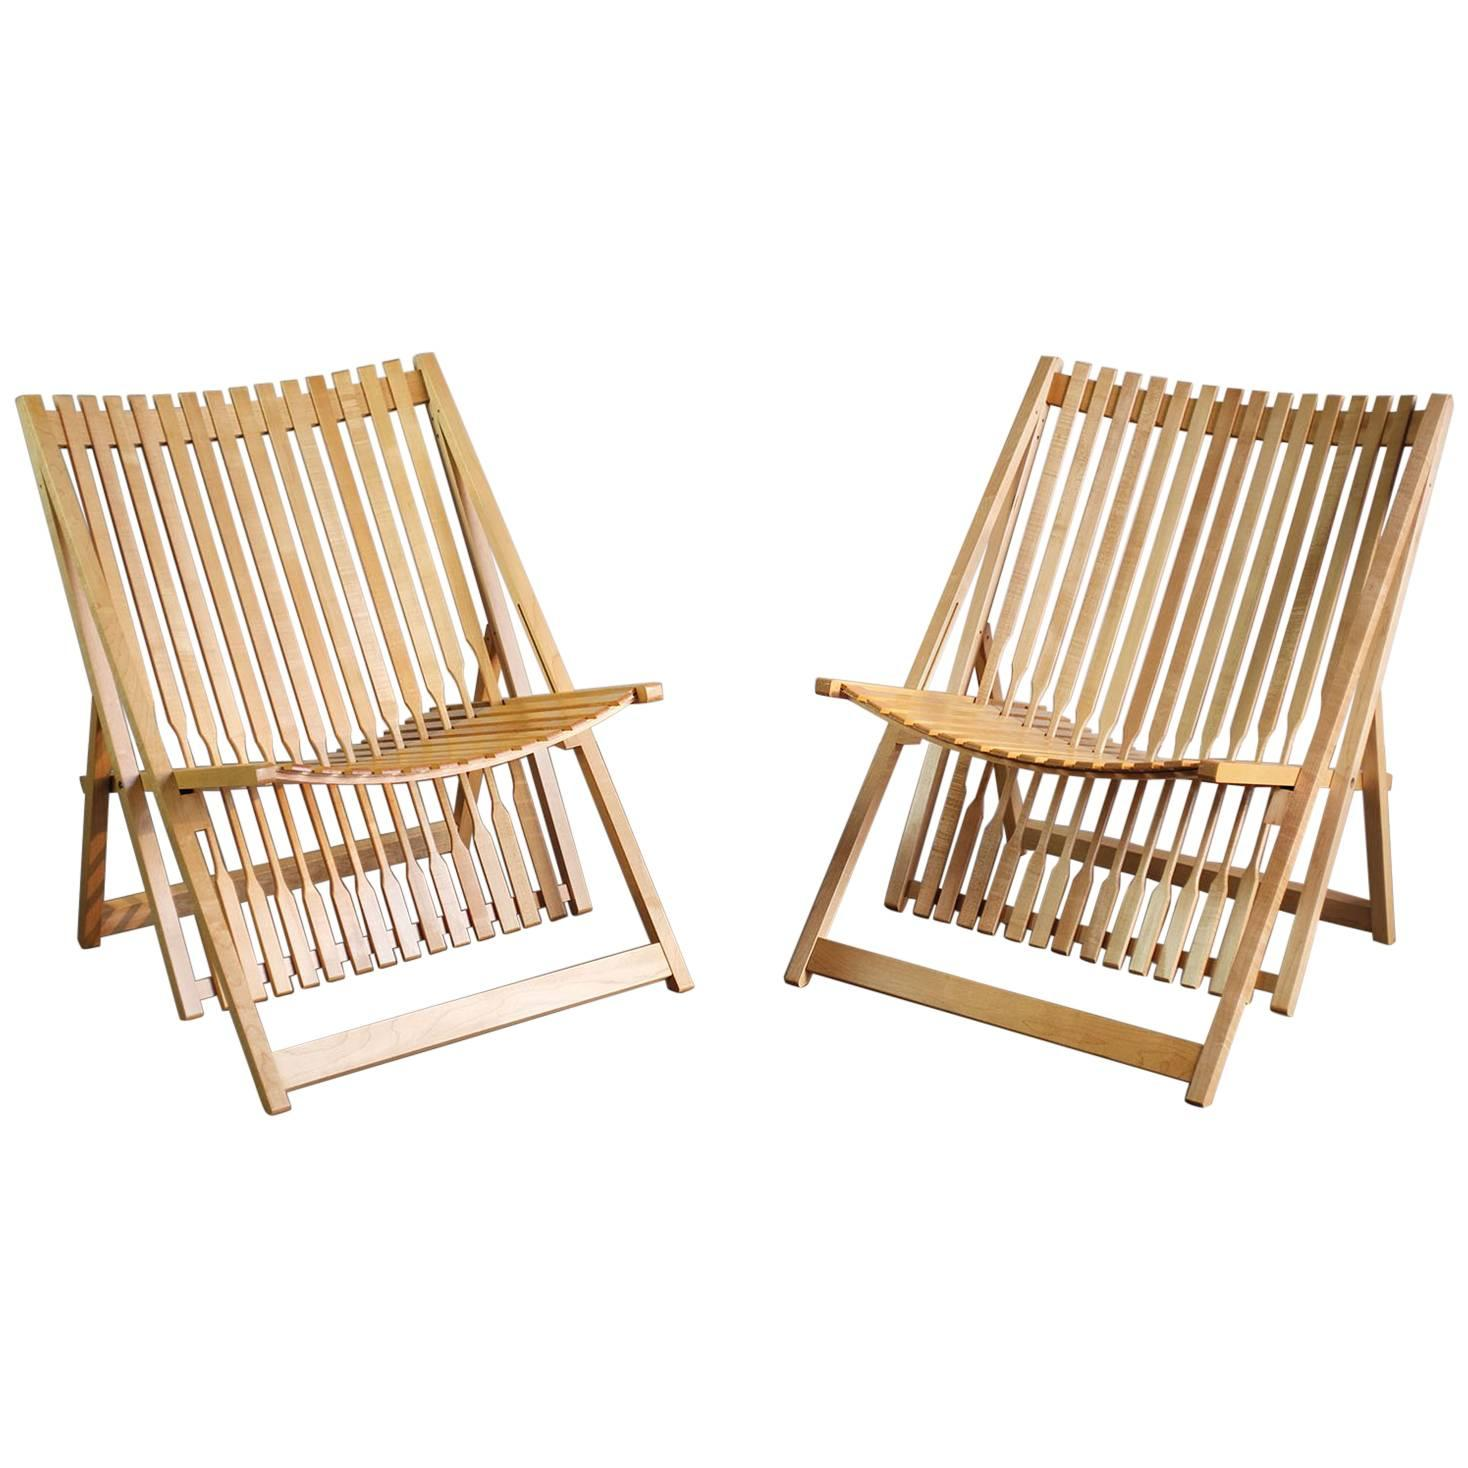 Jean Claude Duboys, Pair Of A1 Armchairs, France, 1980